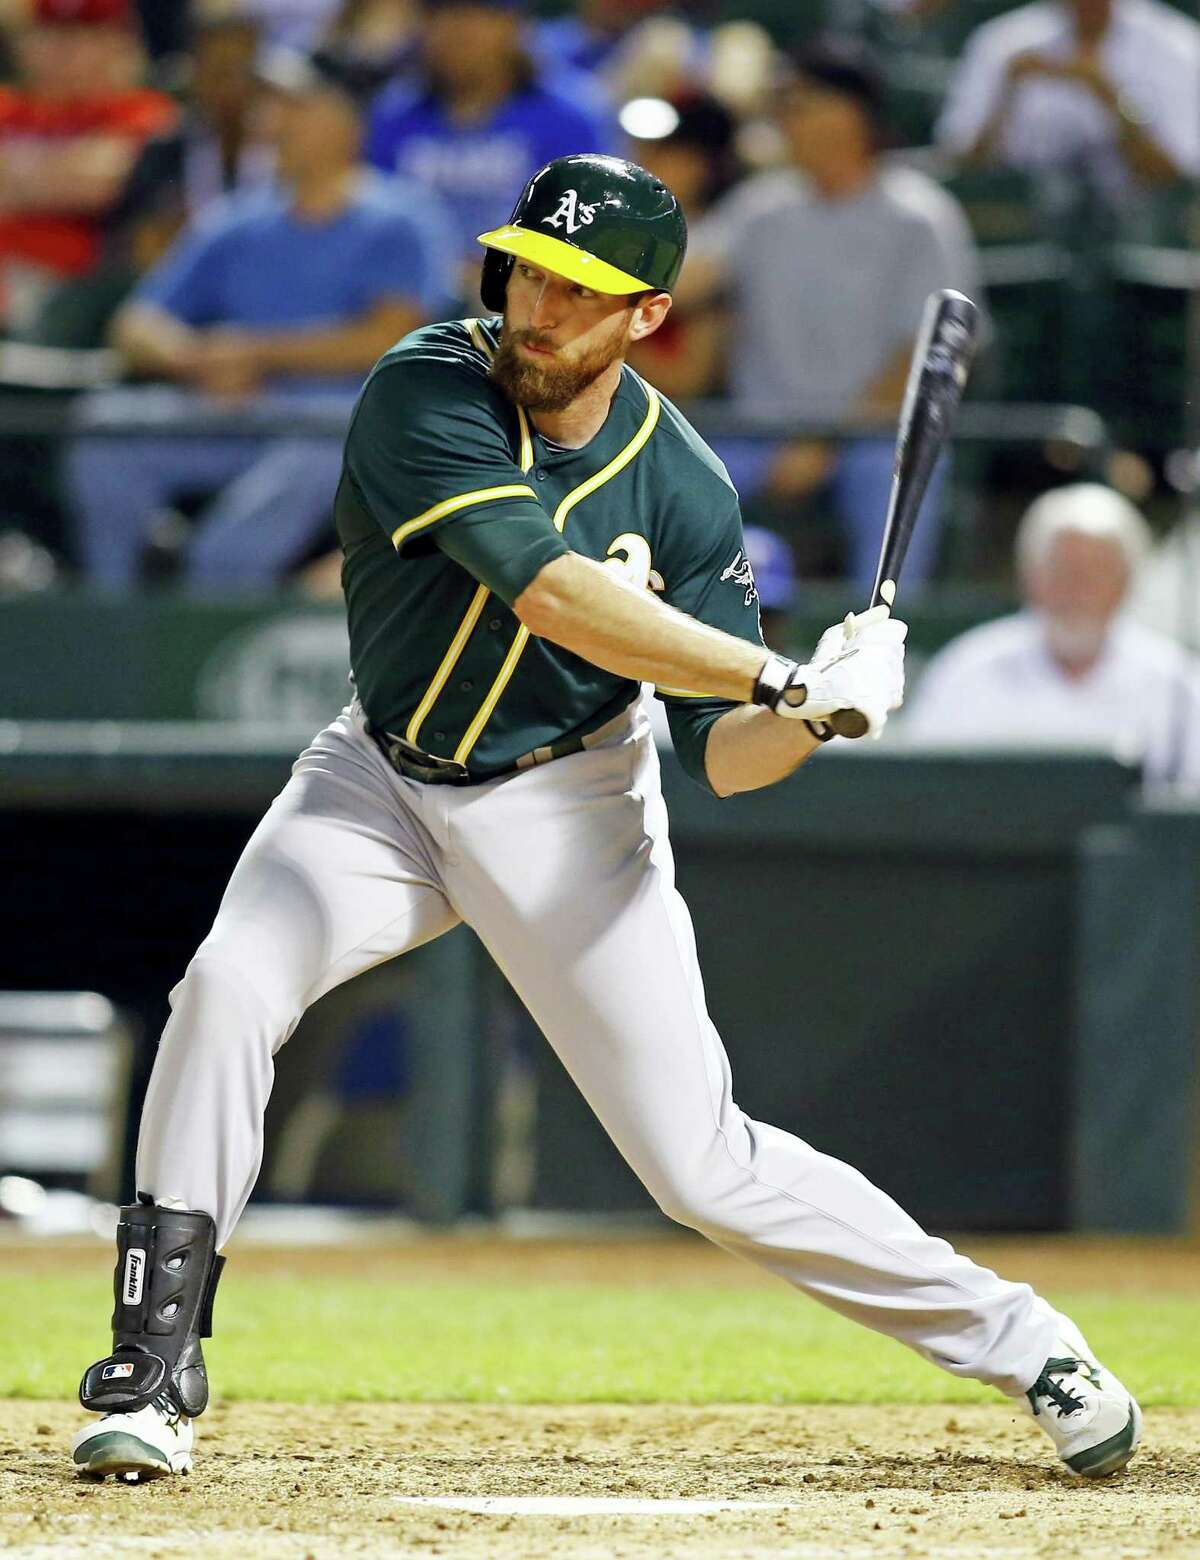 Ike Davis and the Yankees finalized a one-year deal on Monday.